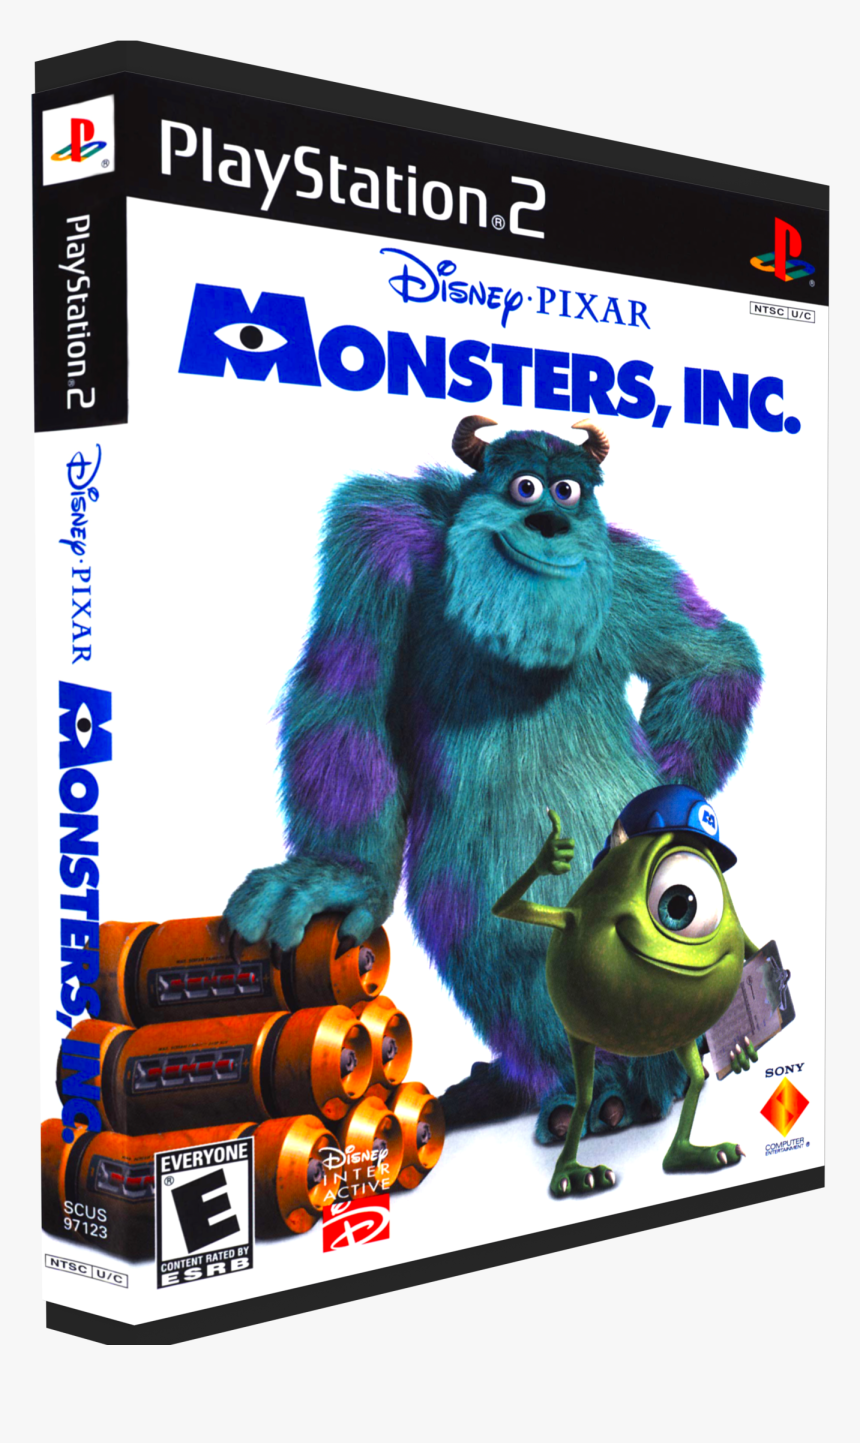 Disney Pixar S Monsters Inc Ps2 Hd Png Download Kindpng